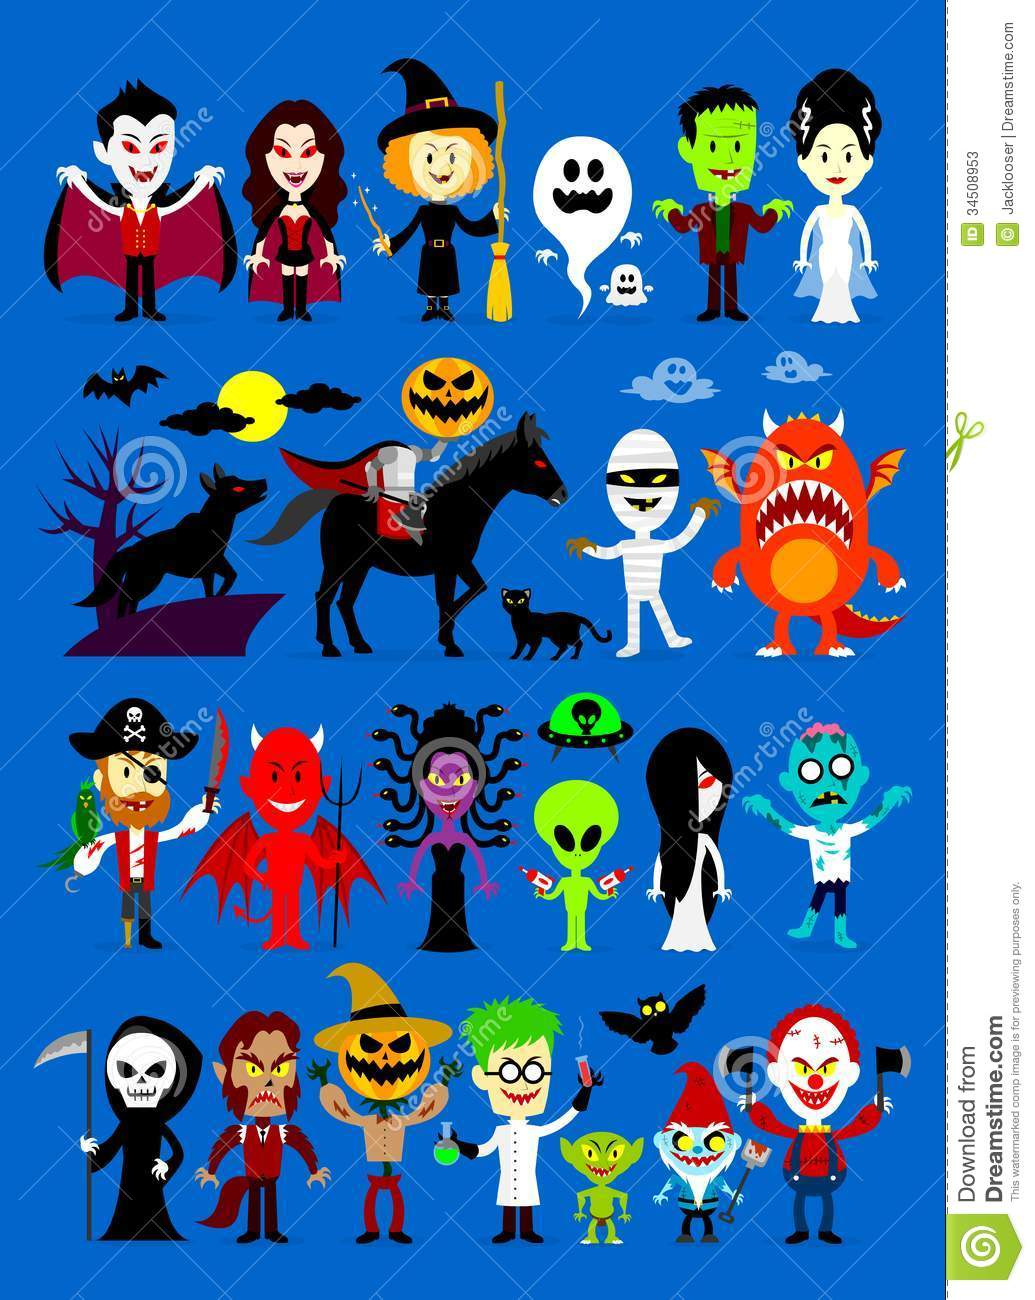 Monsters Mash Halloween Cartoon Characters including Vampires, Witch ...